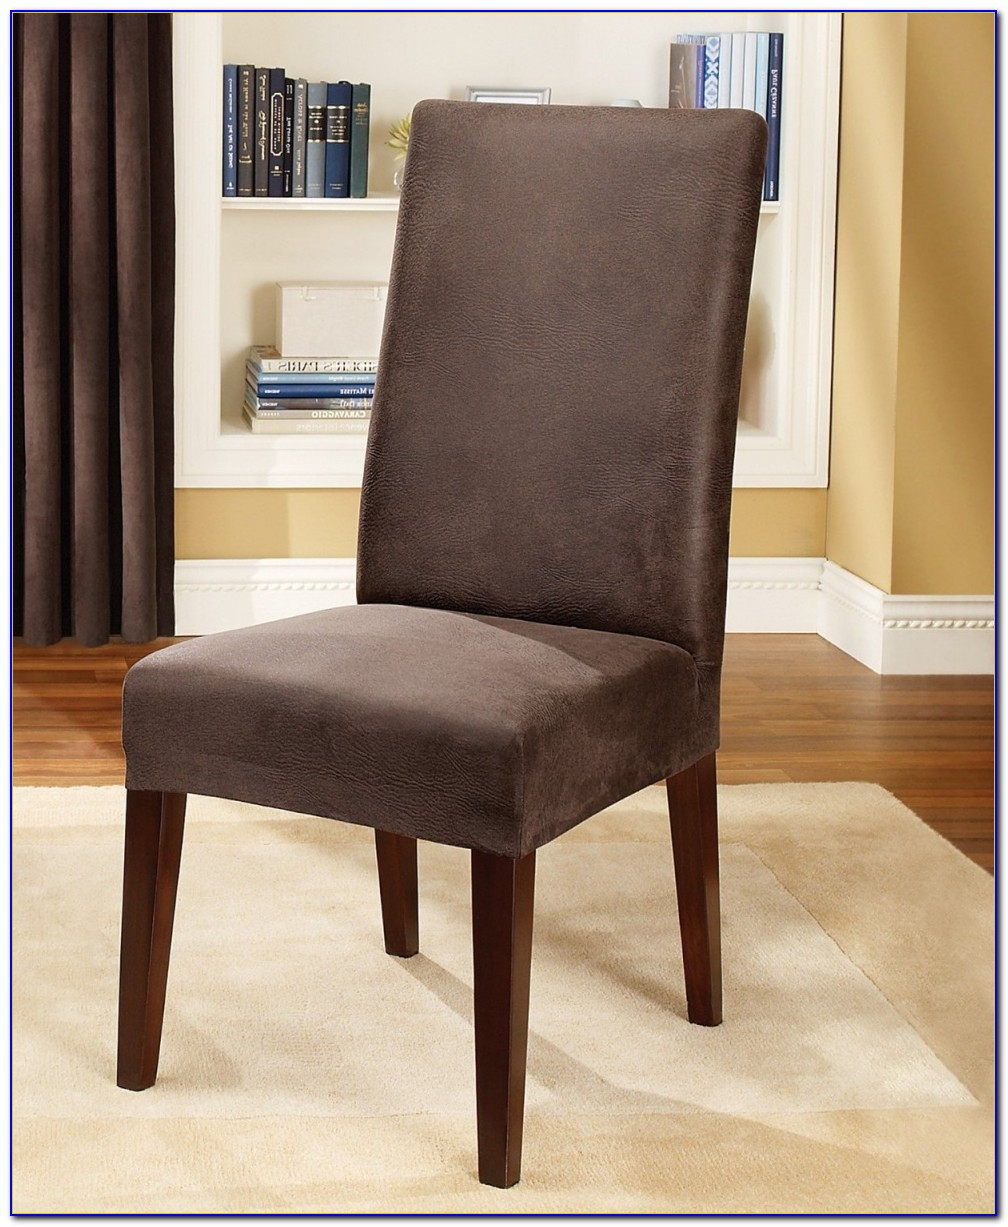 Slipcovers For Chairs Bed Bath And Beyond